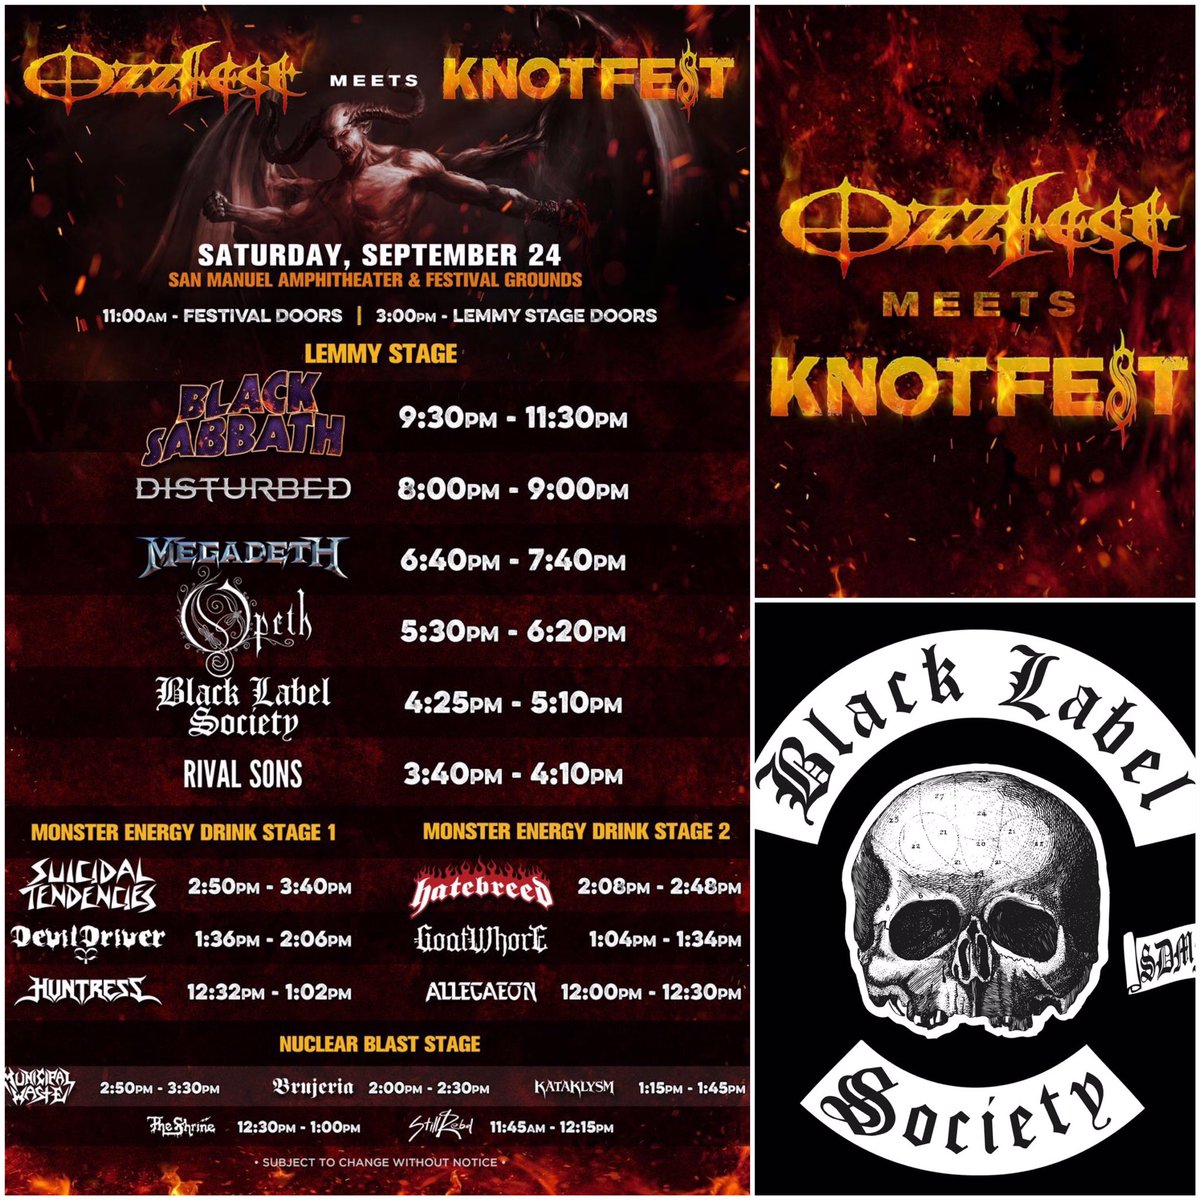 #BlackLabelSociety playing Saturday, September 24th at OzzfestMeetsKnotfest in San Berardino, CA! @ozzfestknotfest https://t.co/b1cr0g5r1r